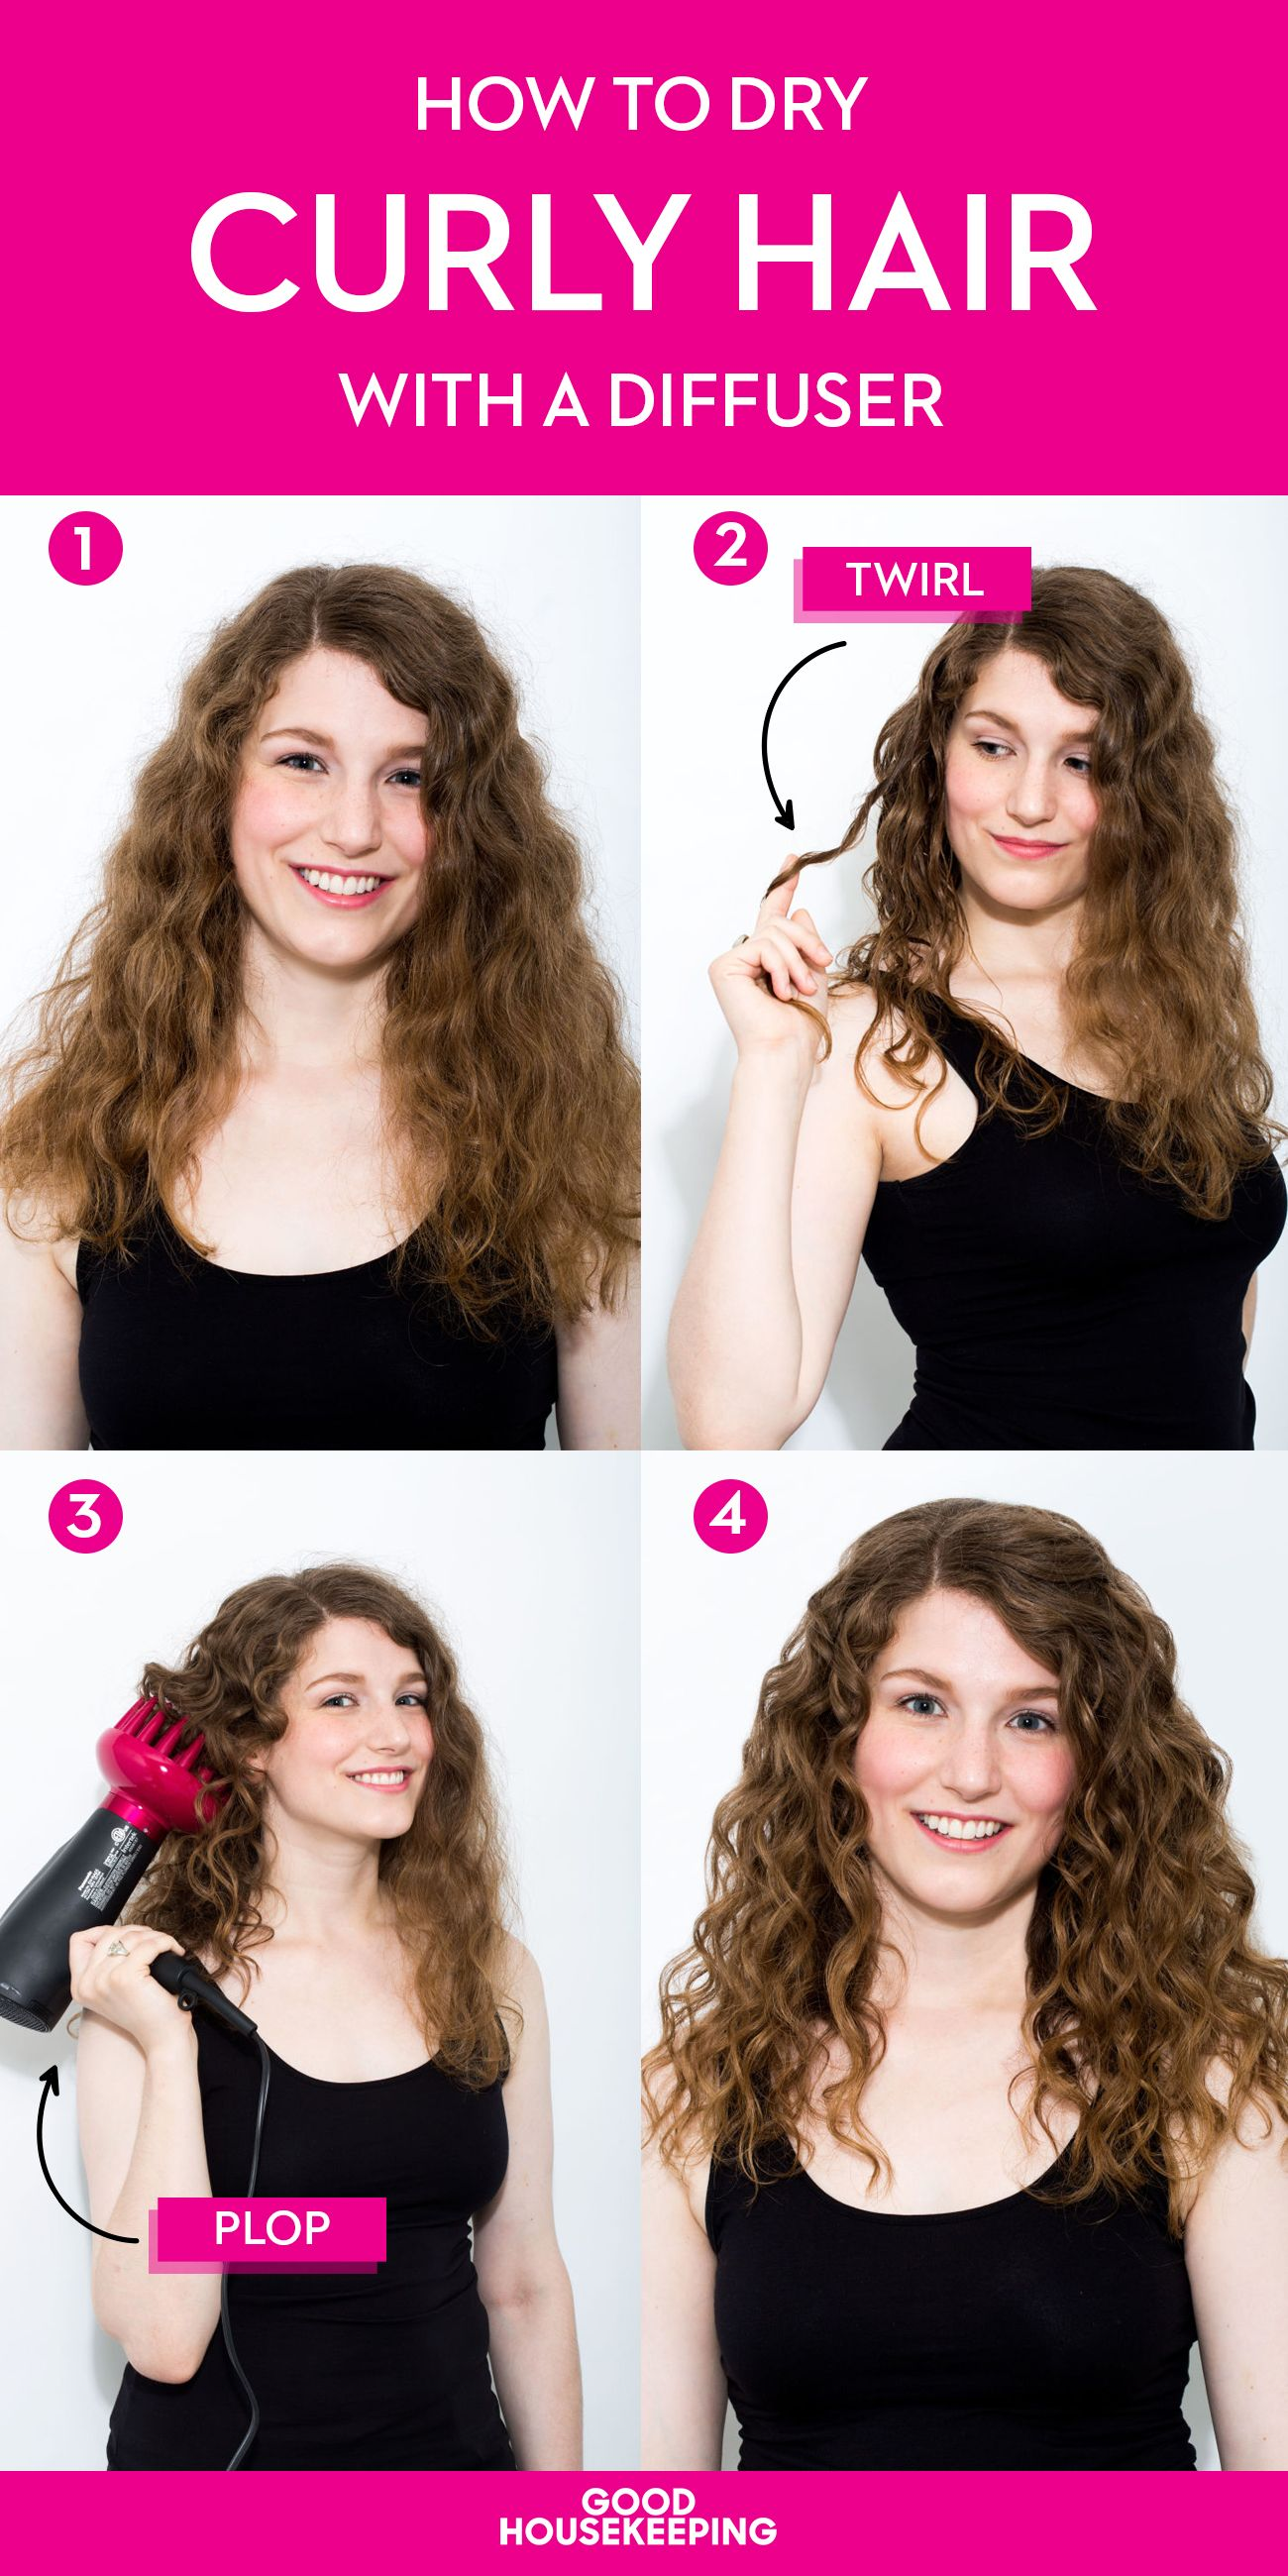 The Pineapple Hair Trick Will Give You Defined Curls Overnight Curly Hair Styles Naturally Curly Hair Tips Curly Hair Styles